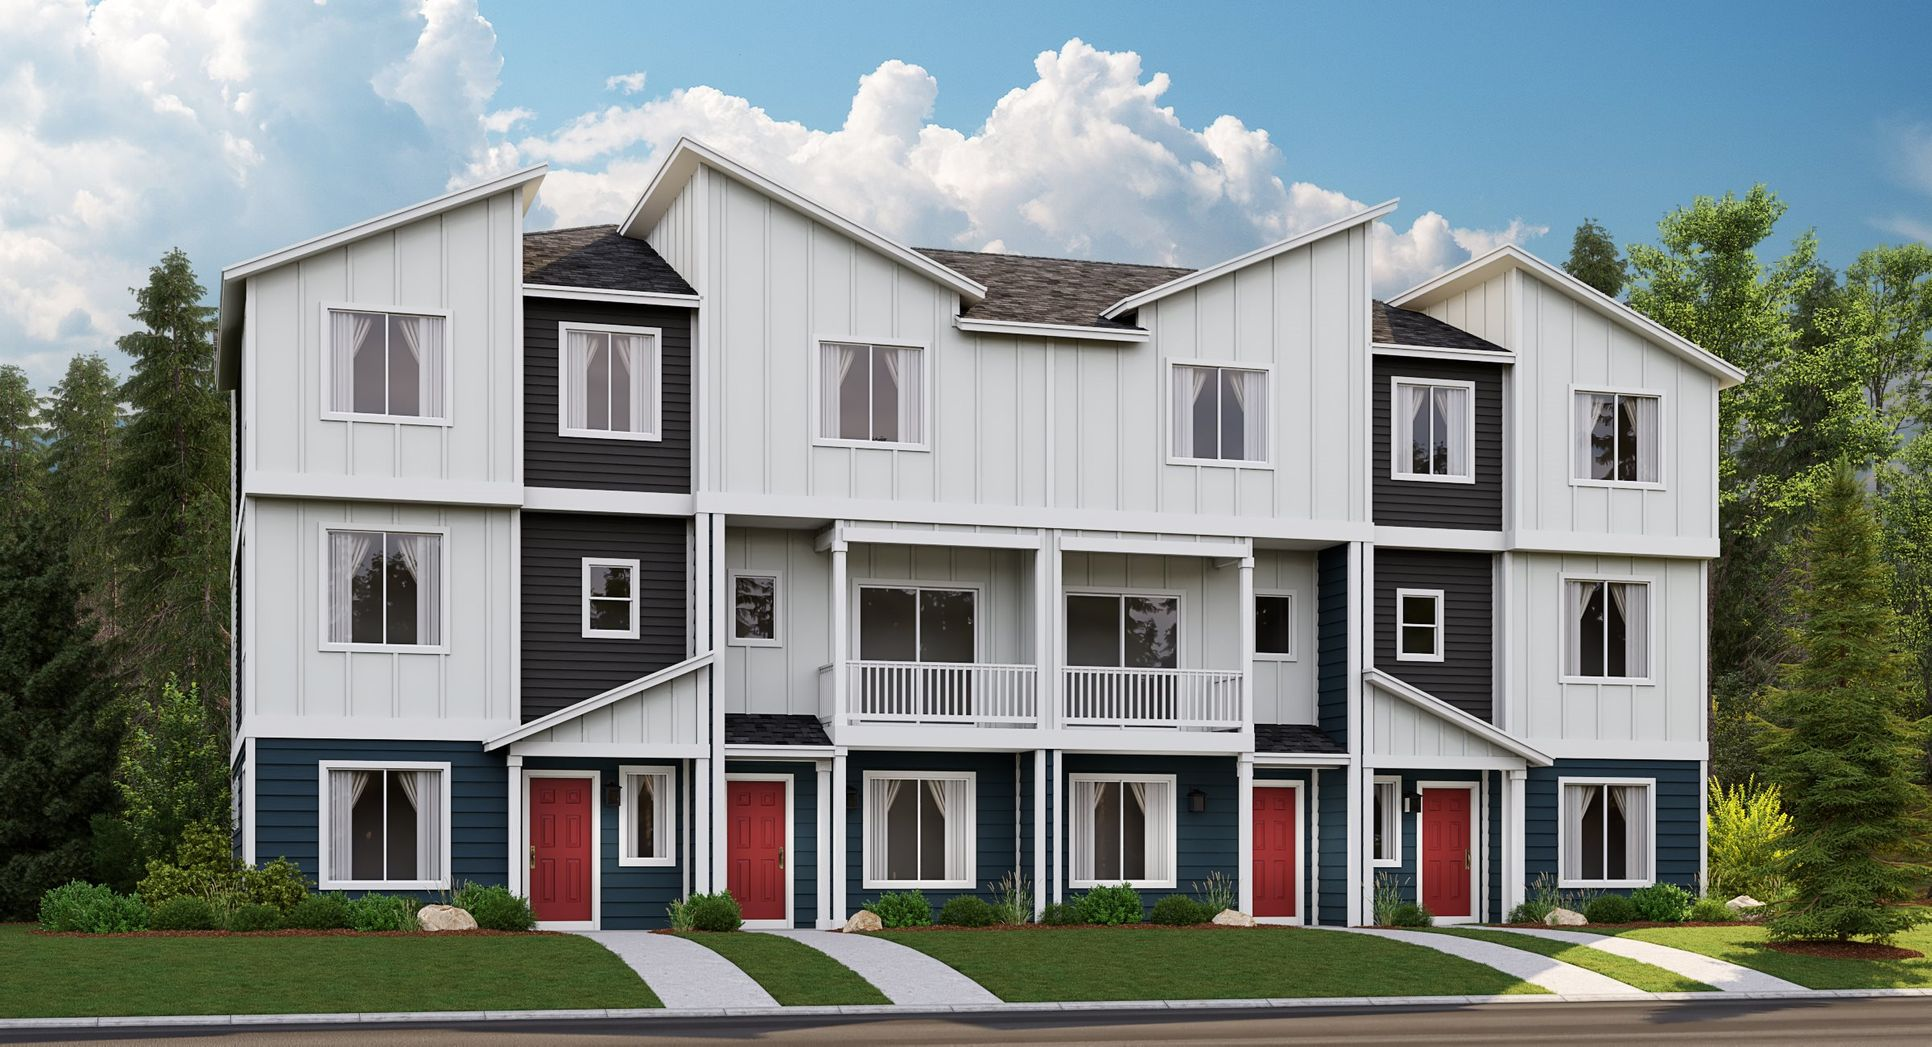 Village Green Townhomes at Ten Trails